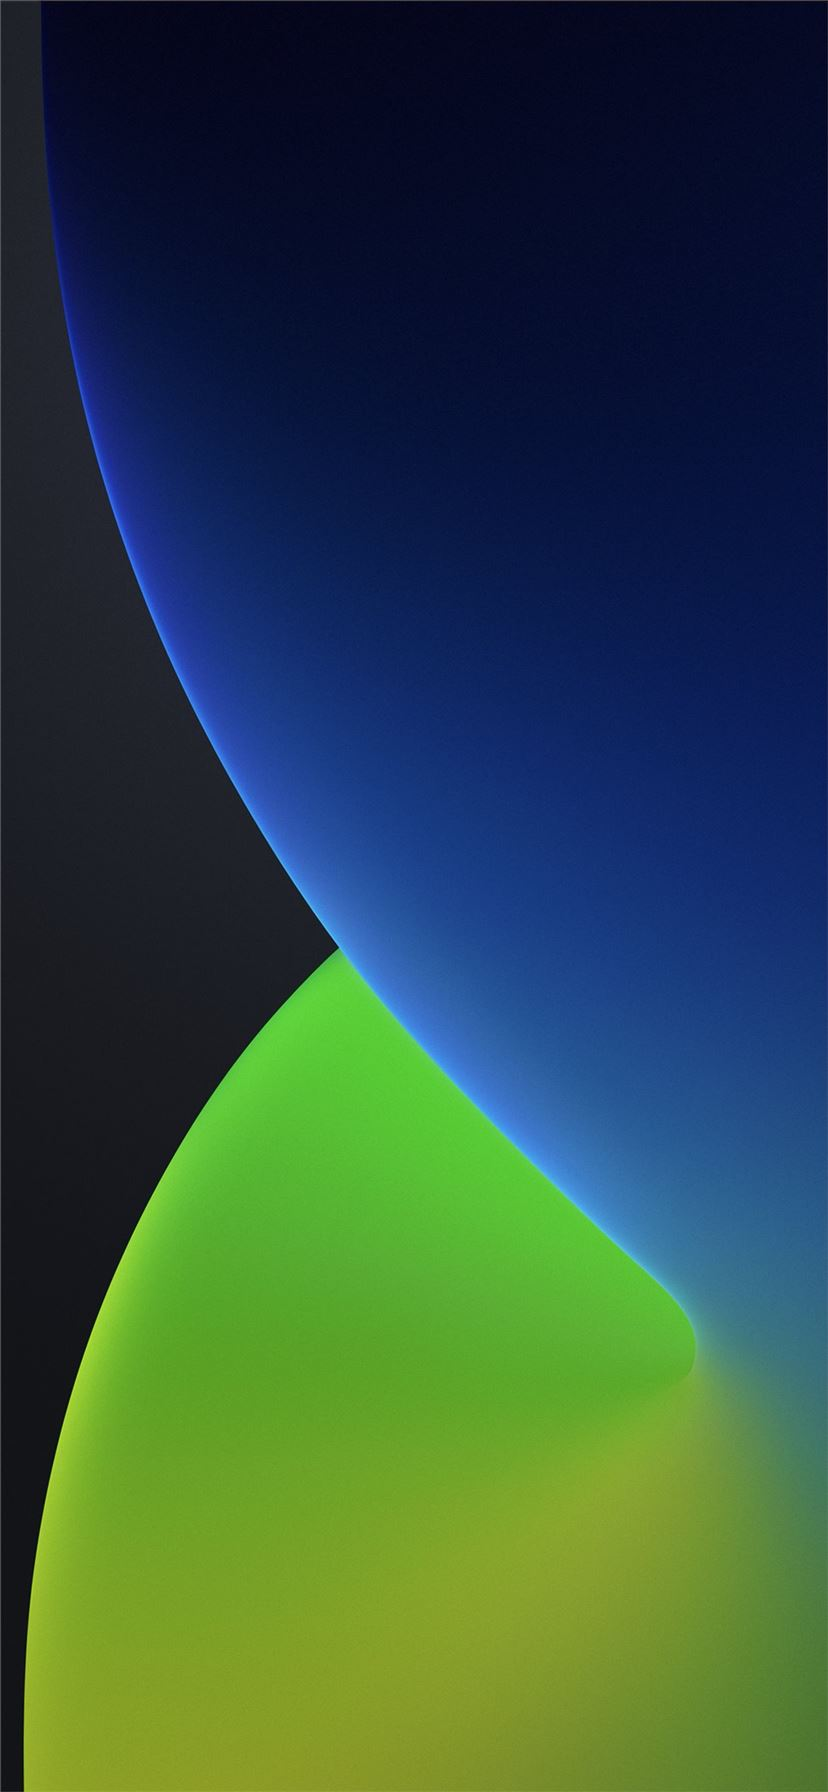 13+ Ios 14 Wallpaper Cool Pictures